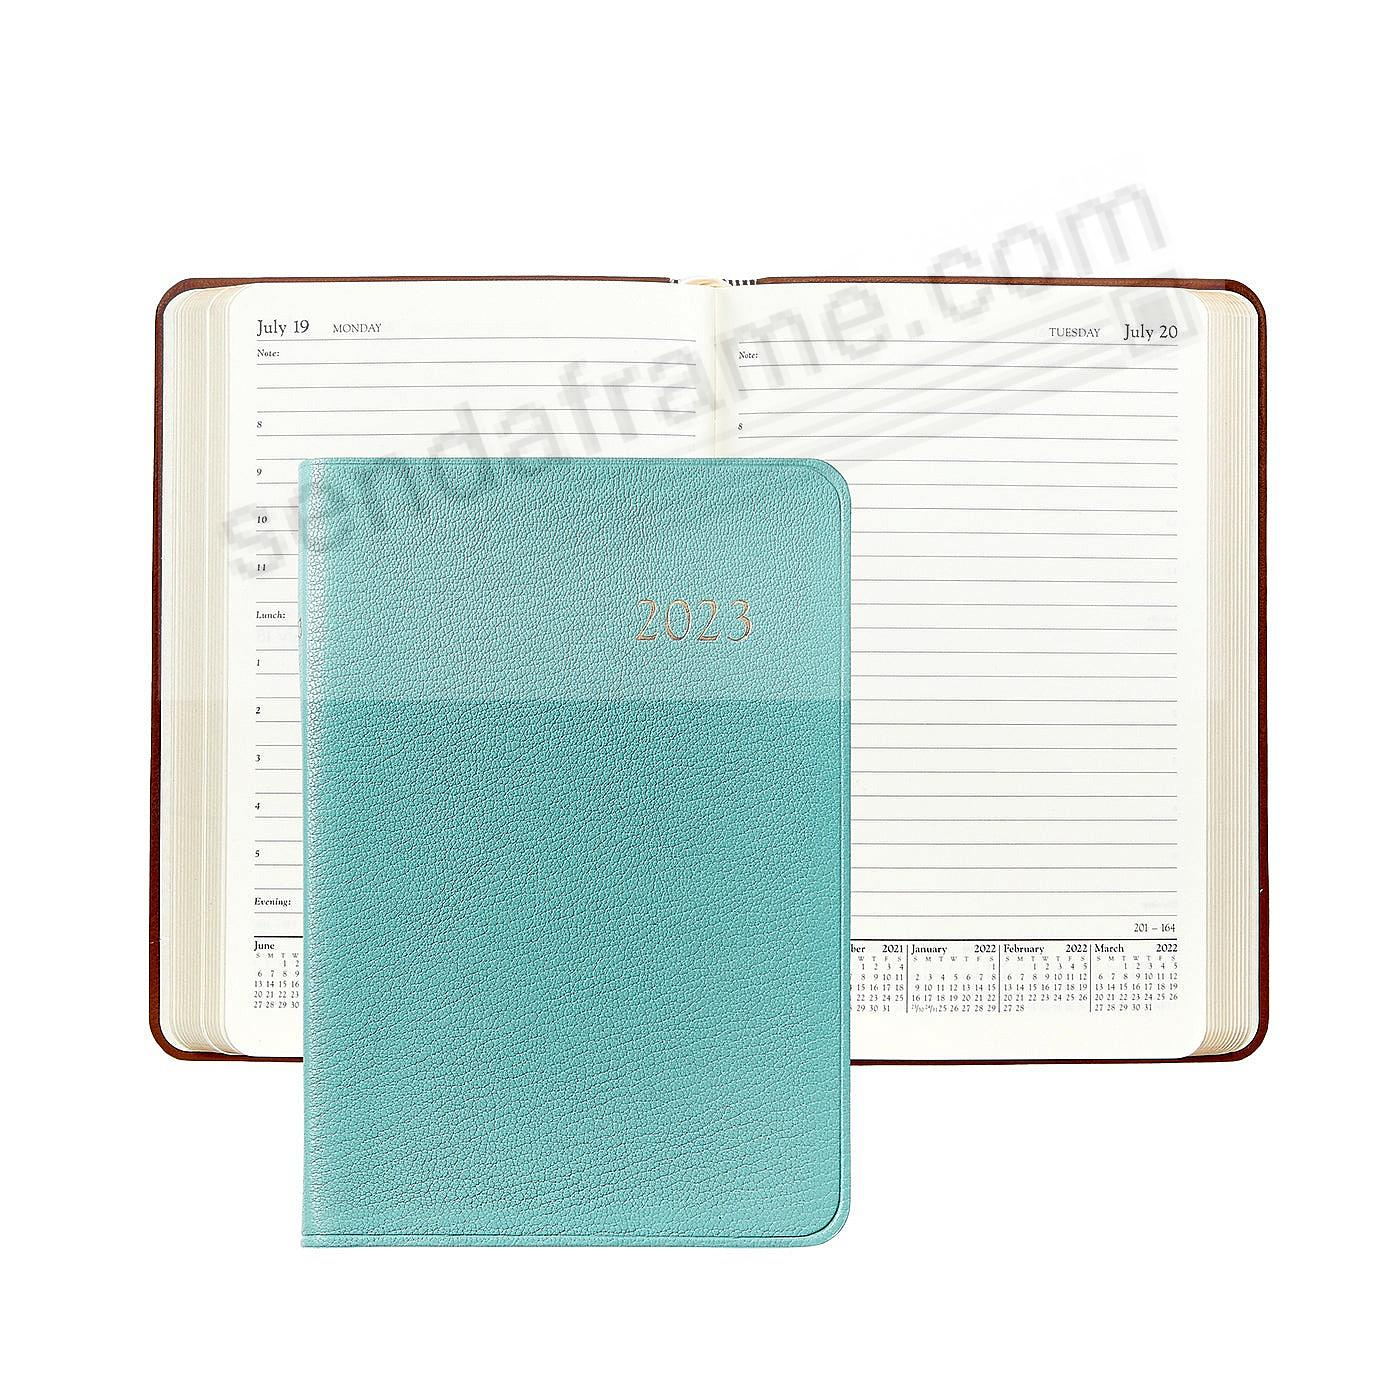 2020 ROBINS-EGG BLUE Goatskin leather Daily 8in Journal by Graphic Image™